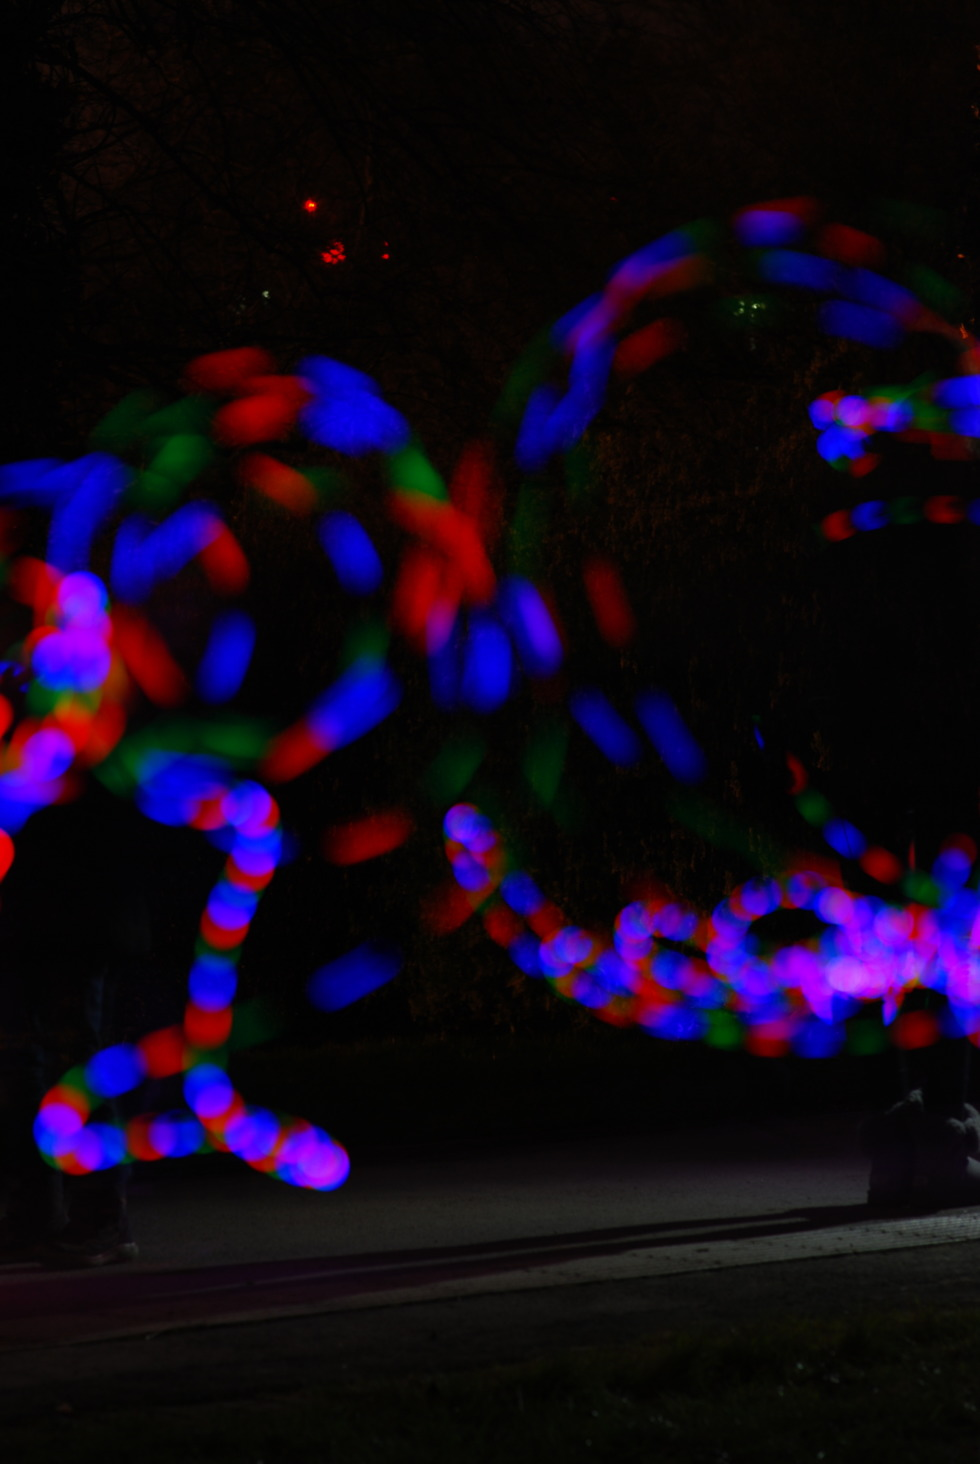 Abstract light painting with LED ball